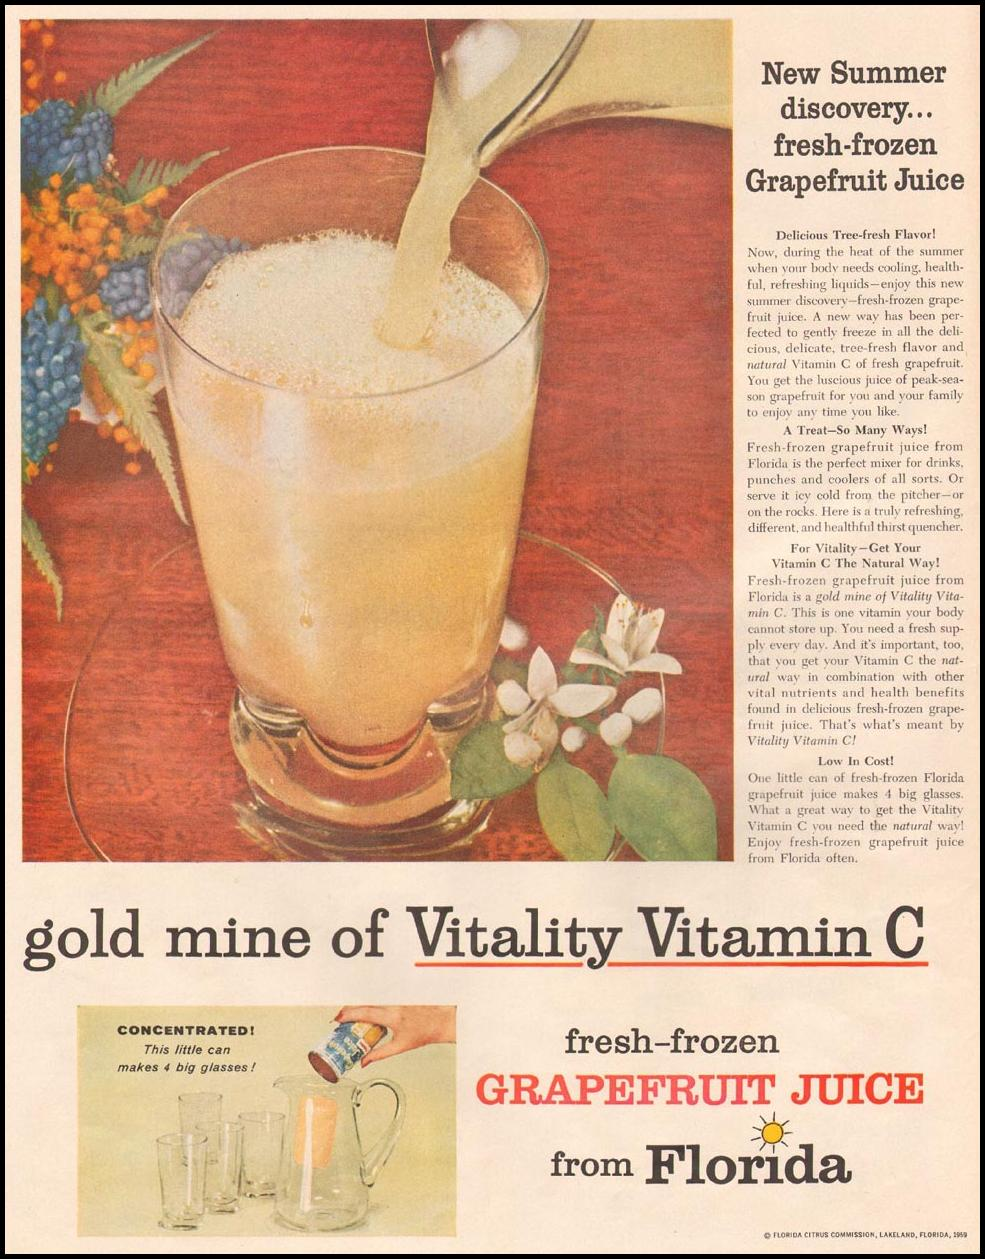 FLORIDA FRESH-FROZEN GRAPEFRUIT JUICE LIFE 08/10/1959